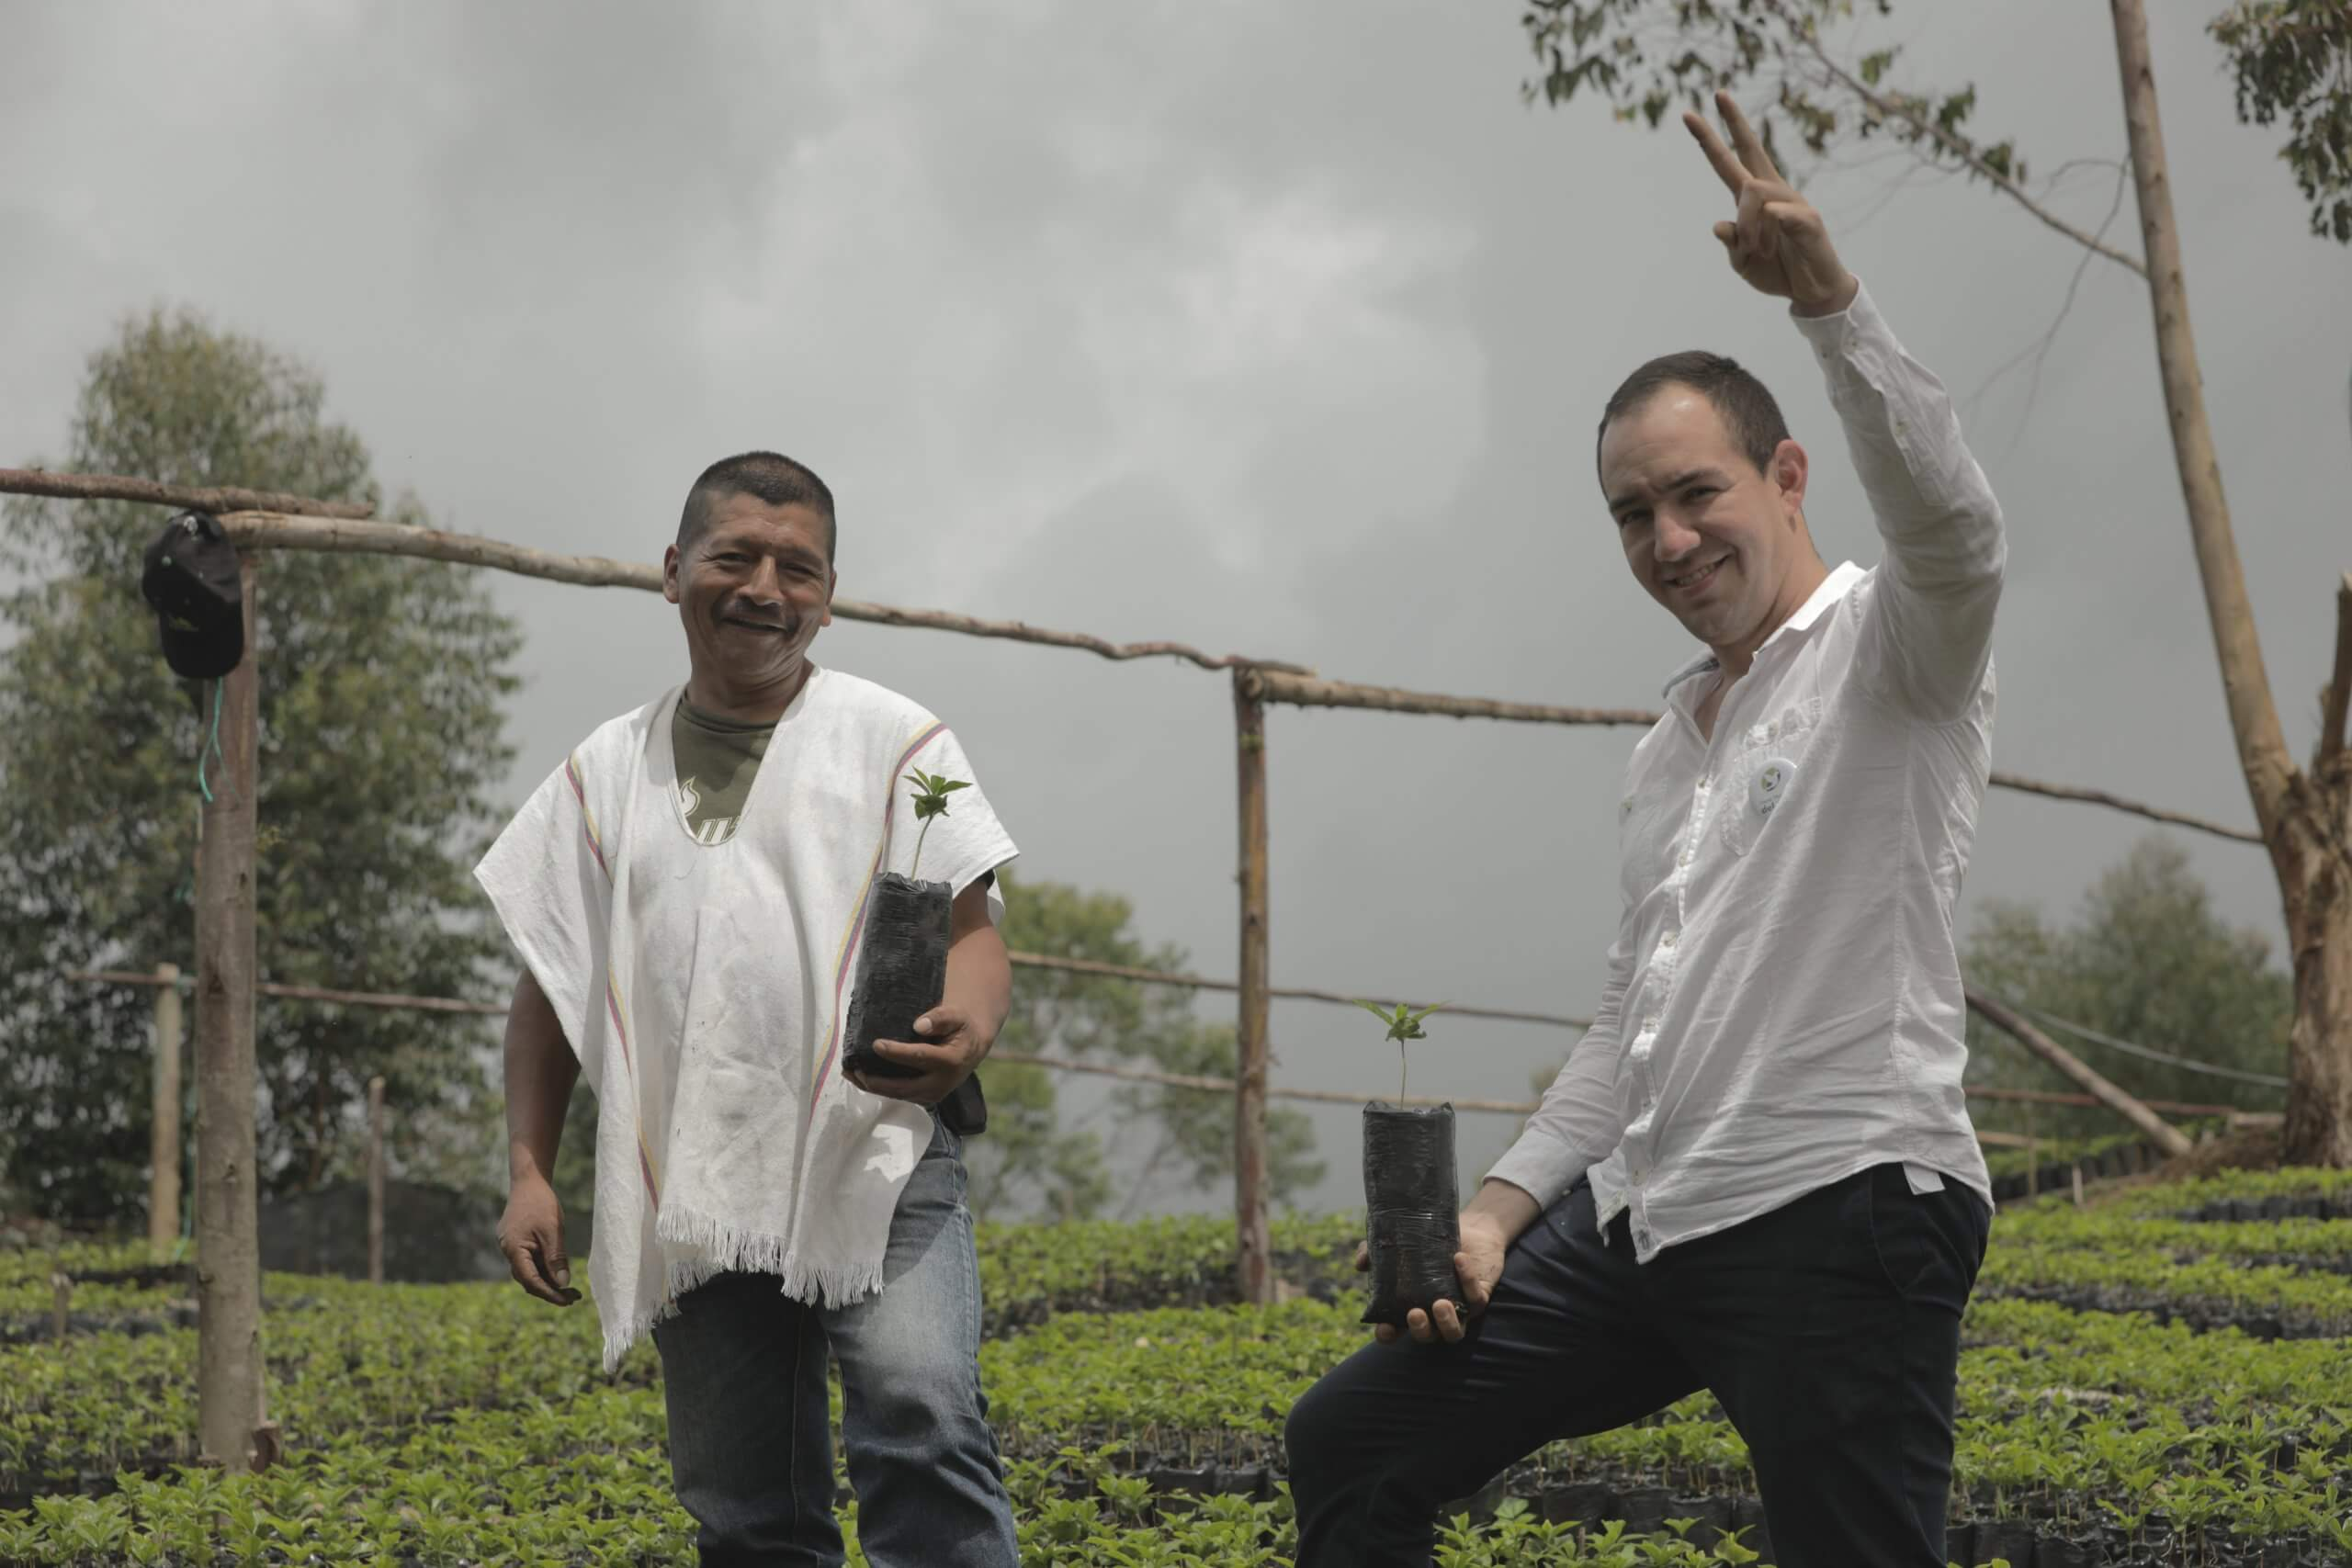 Antonio Pardo y Nativel Chantre Cauca